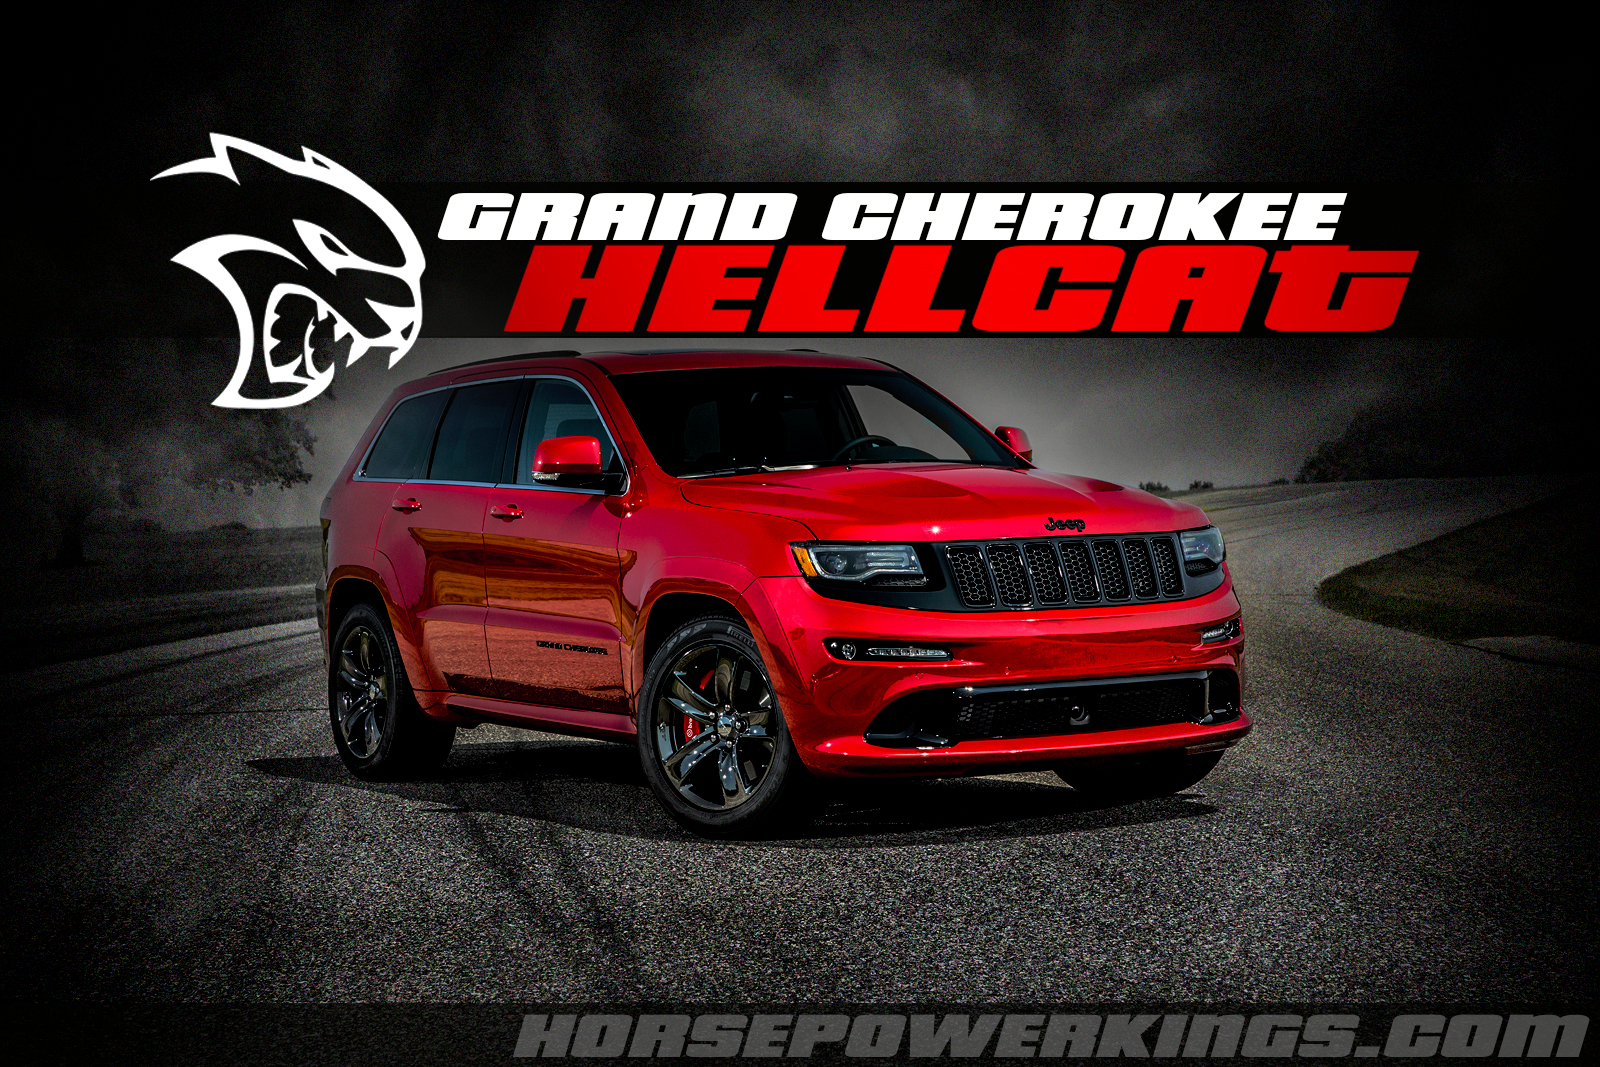 confirmed: jeep ceo promises grand cherokee hellcat 'before the